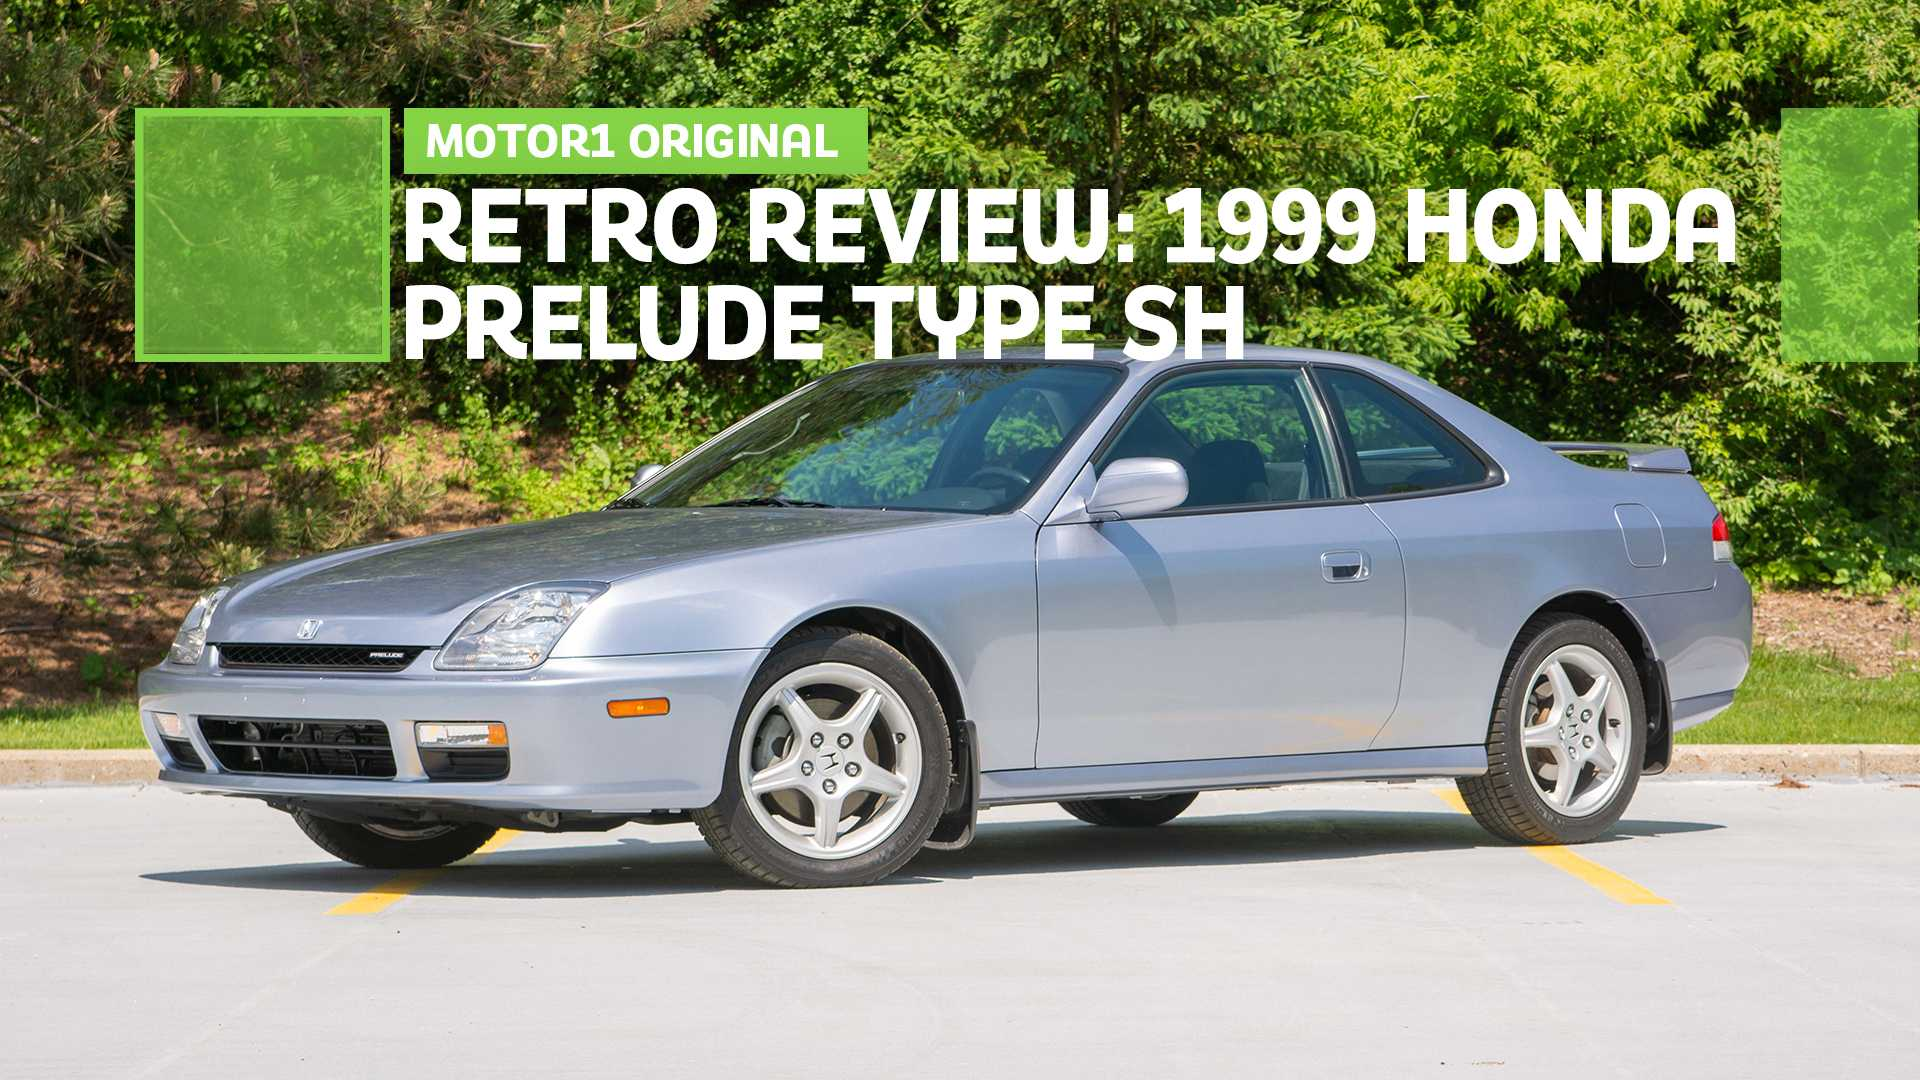 1999 honda prelude type sh retro review back to basics 1999 honda prelude type sh retro review